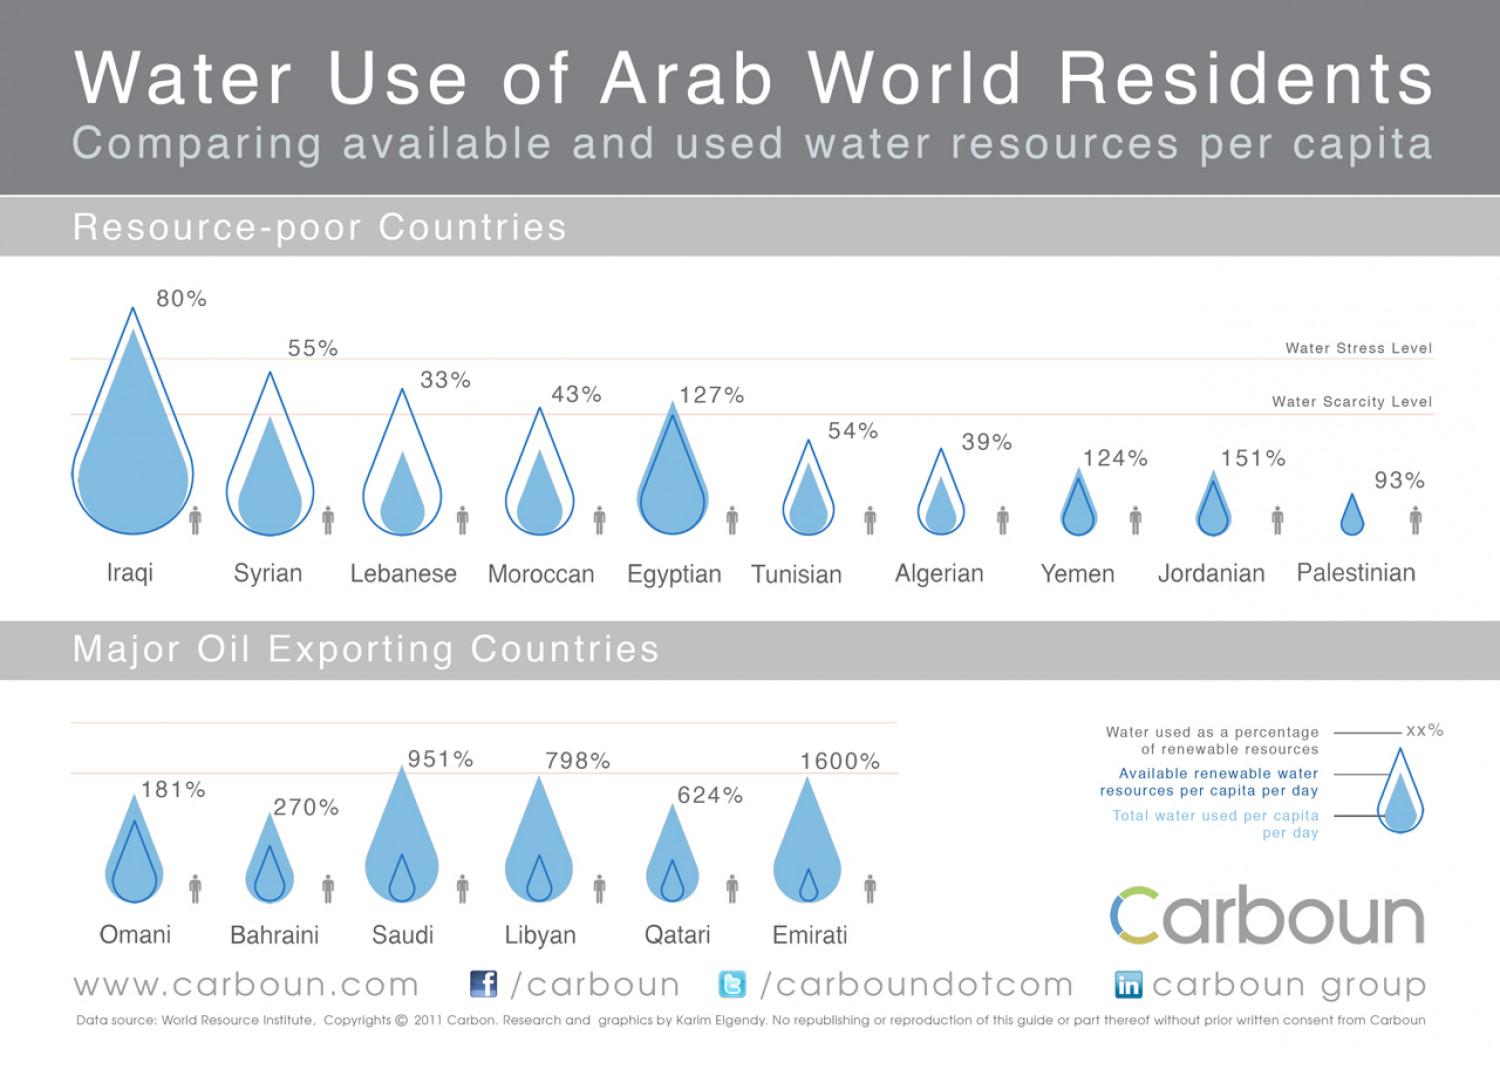 Water Uses of Arab World Residents Infographic